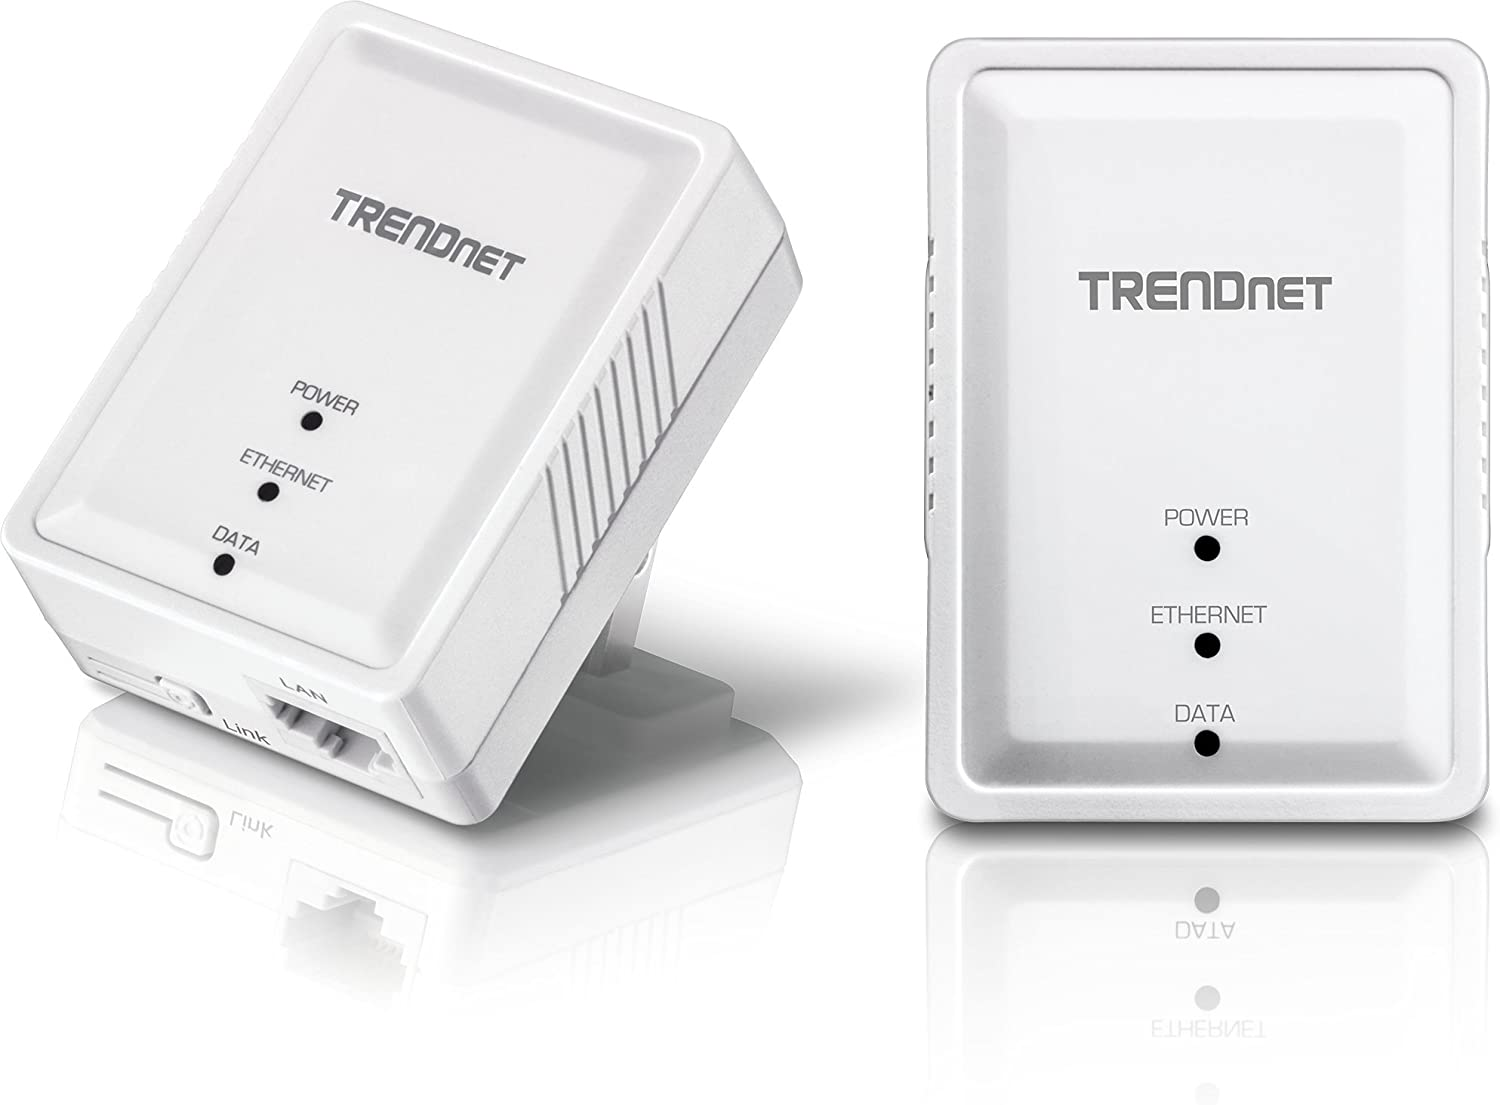 TRENDnet Powerline 500 AV